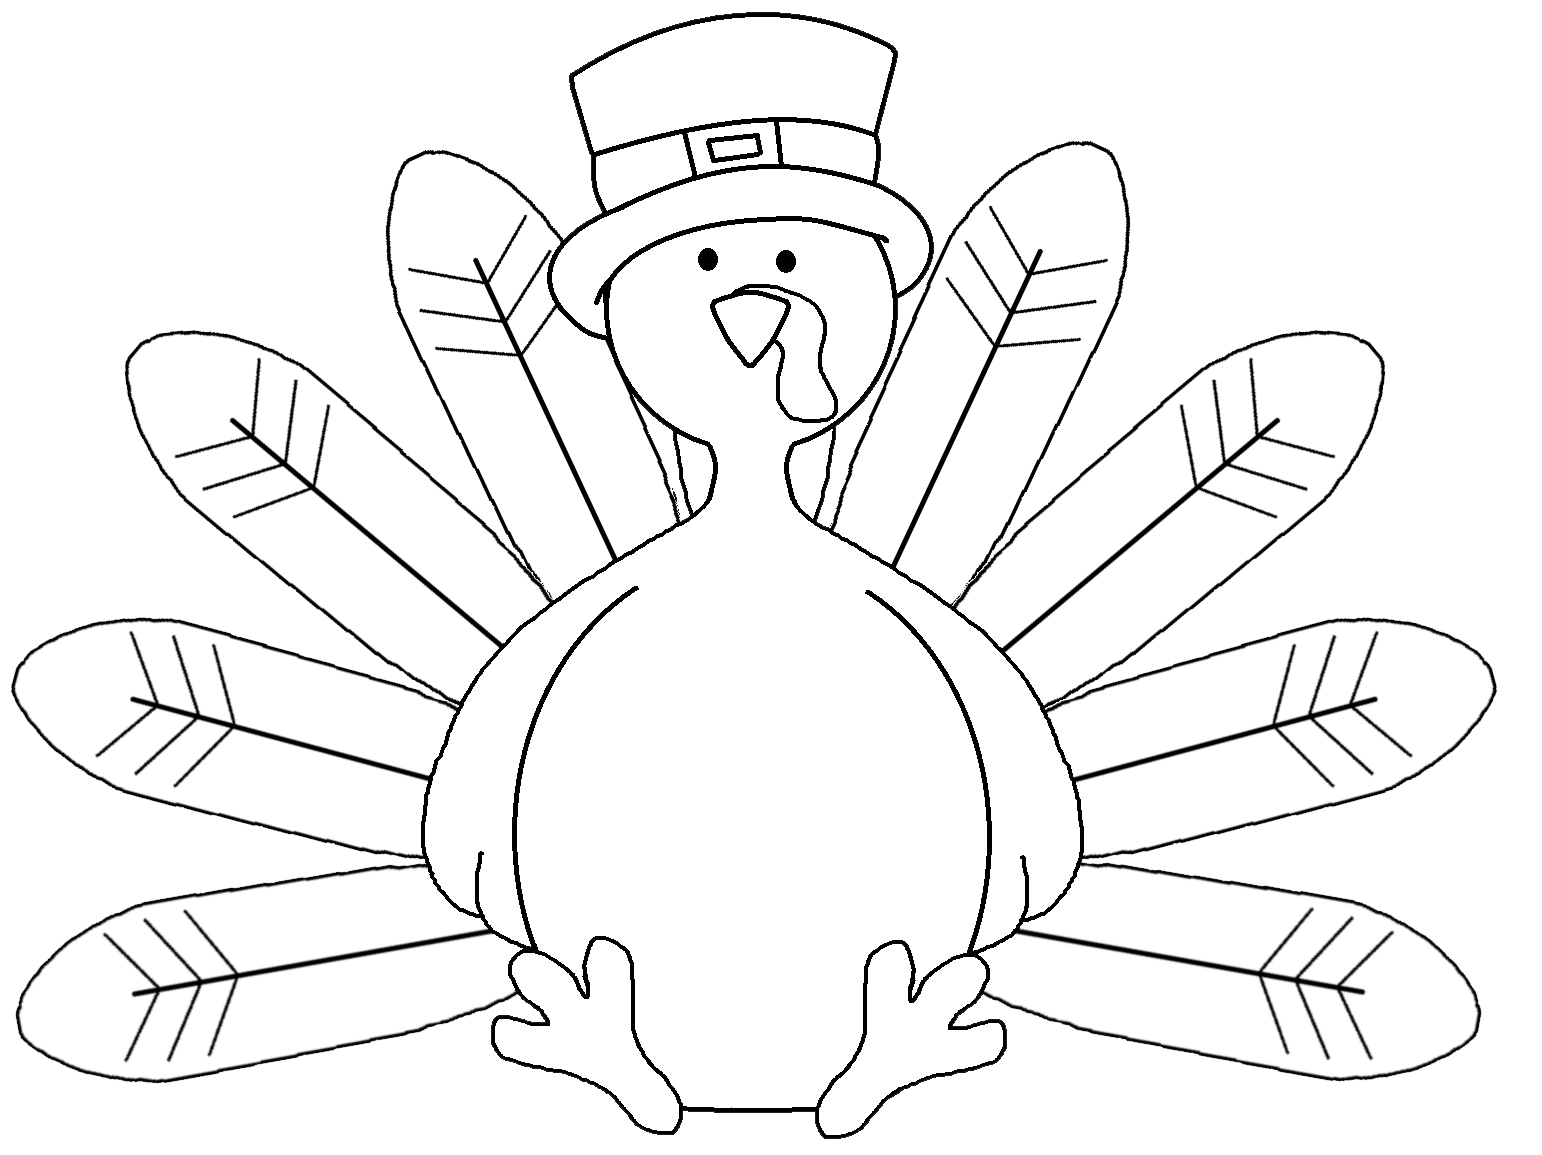 Turkey feather featherless turkey coloring page pages for kids 7 clip art